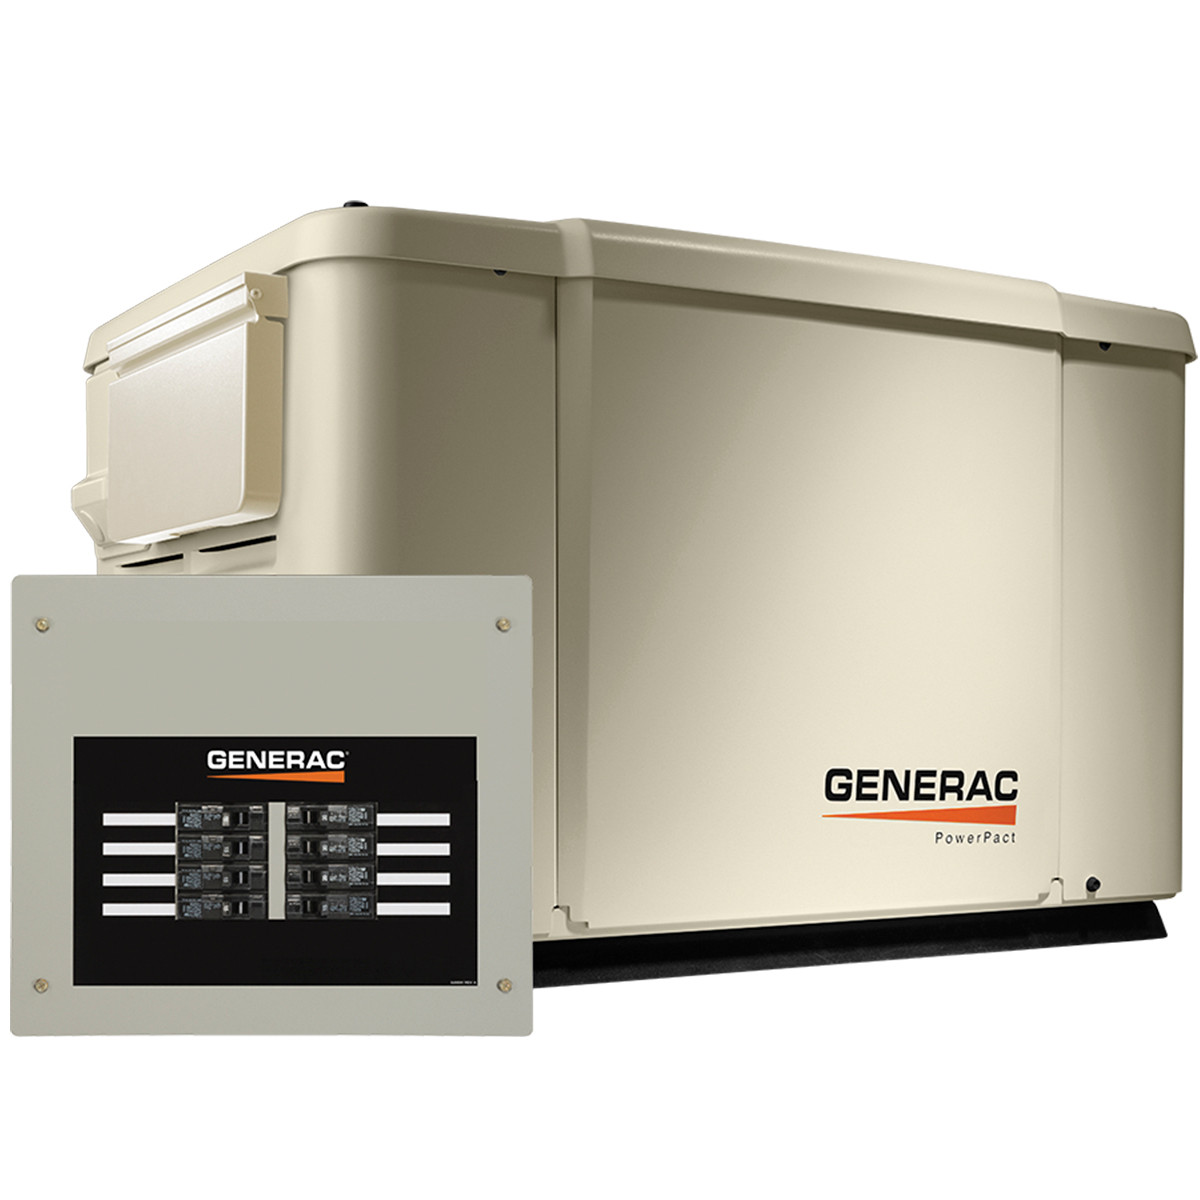 8 Kw Generac Wiring Diagram Third Level Generator Schematic 6998 7 5kw Powerpact 50a Circuit Transfer Switch Diagrams